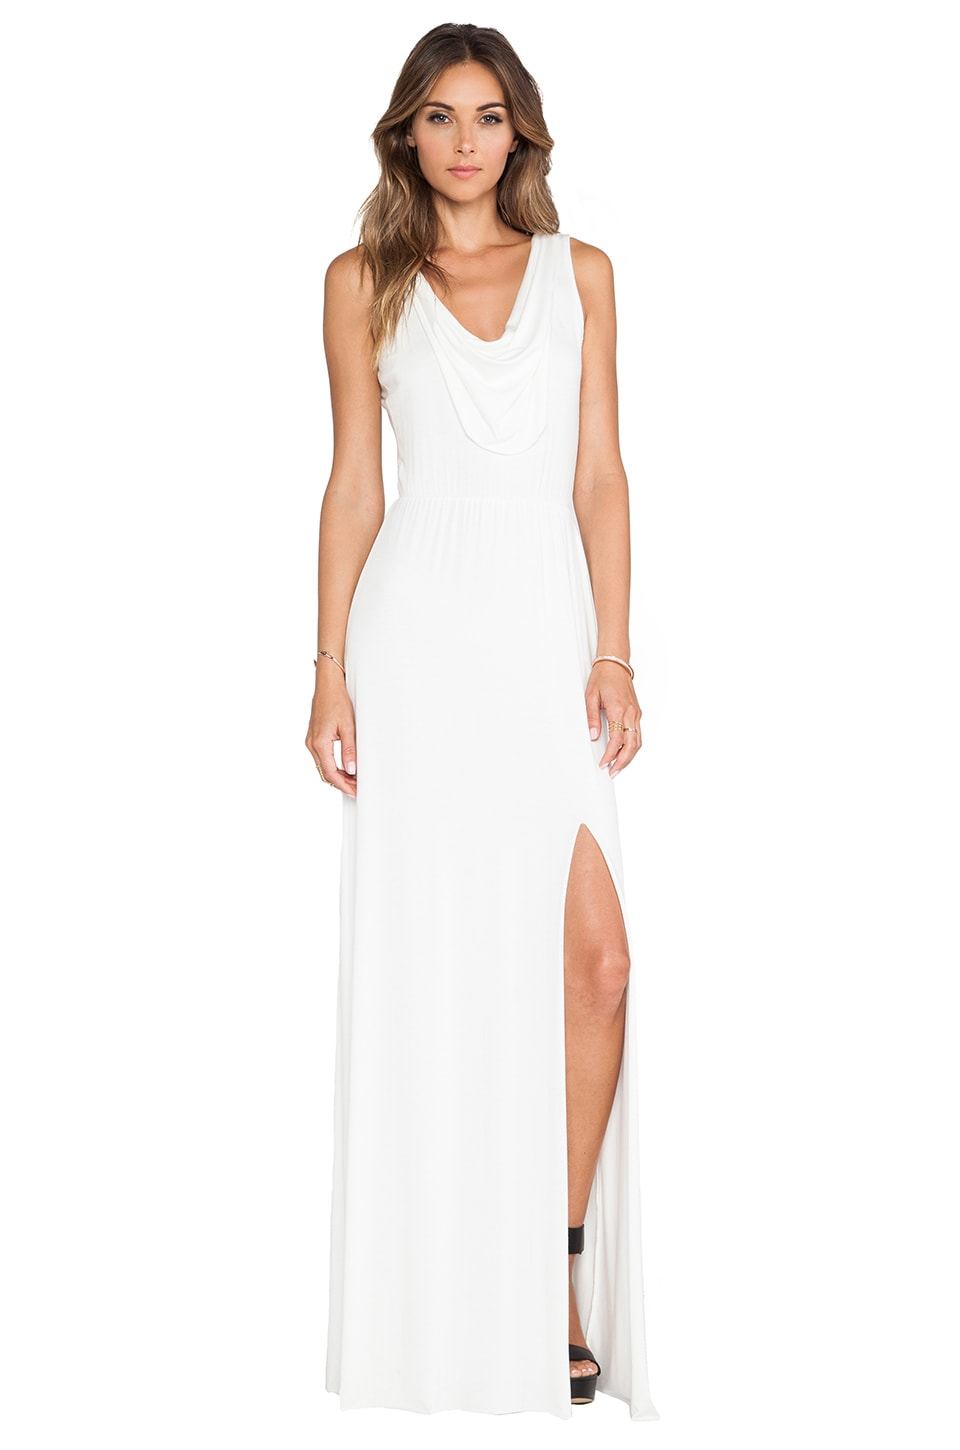 Rachel Pally x REVOLVE Oasis Maxi Dress in White